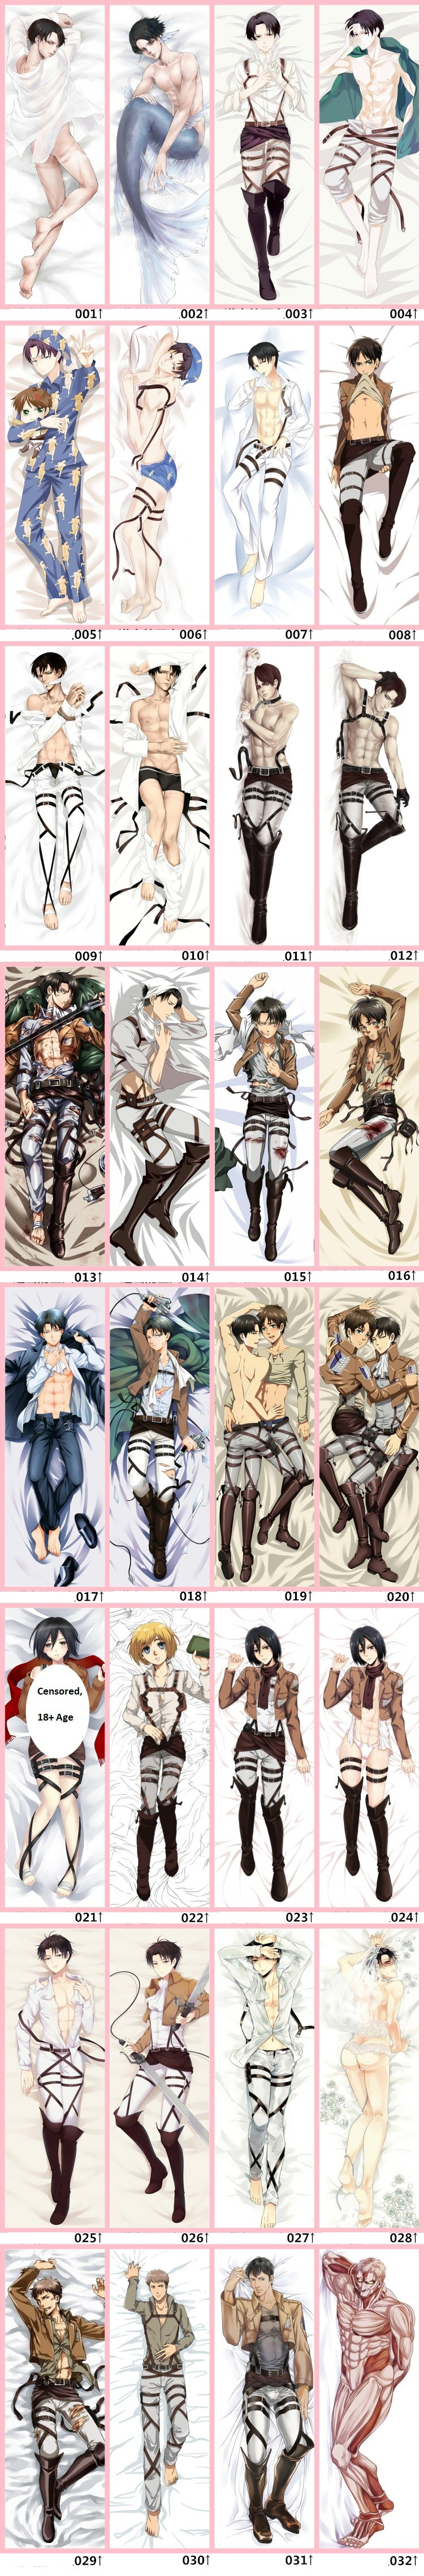 Attack on Titan Body Pillow Design Options